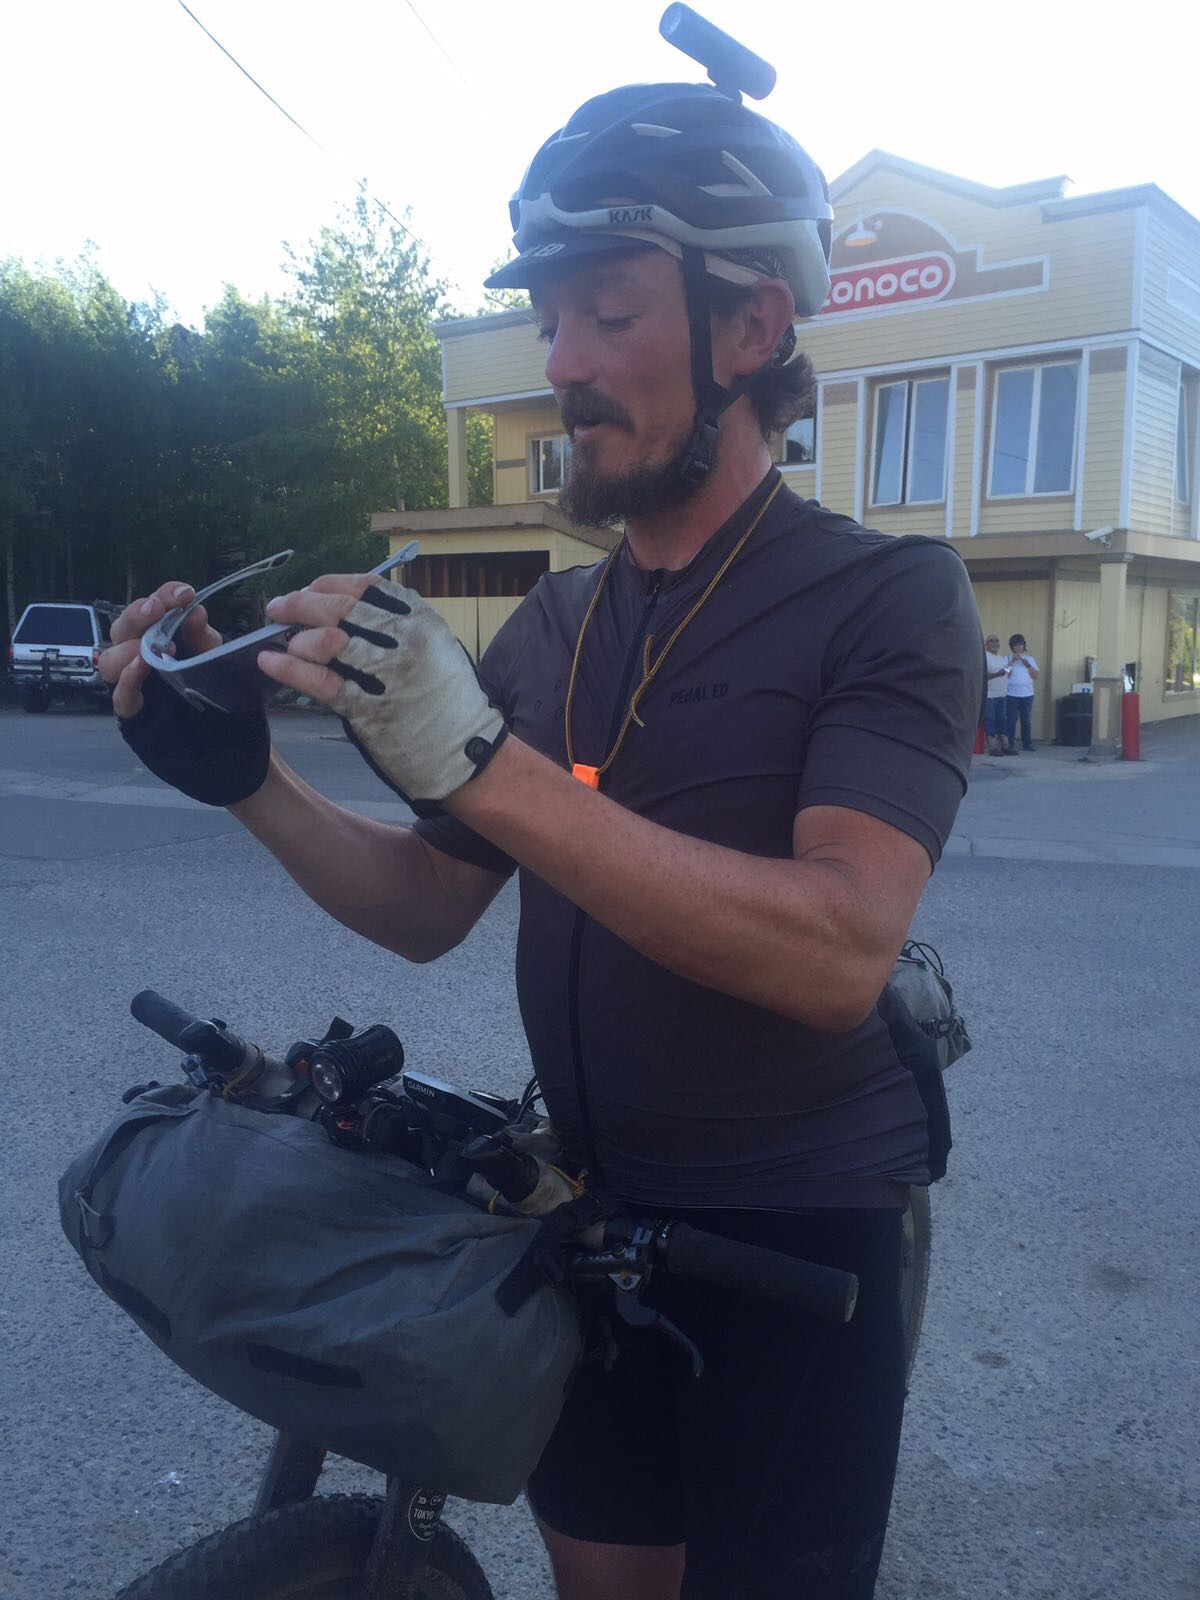 Mike Hall in Breckenridge, CO setting the record on the Tour Divide in 2016